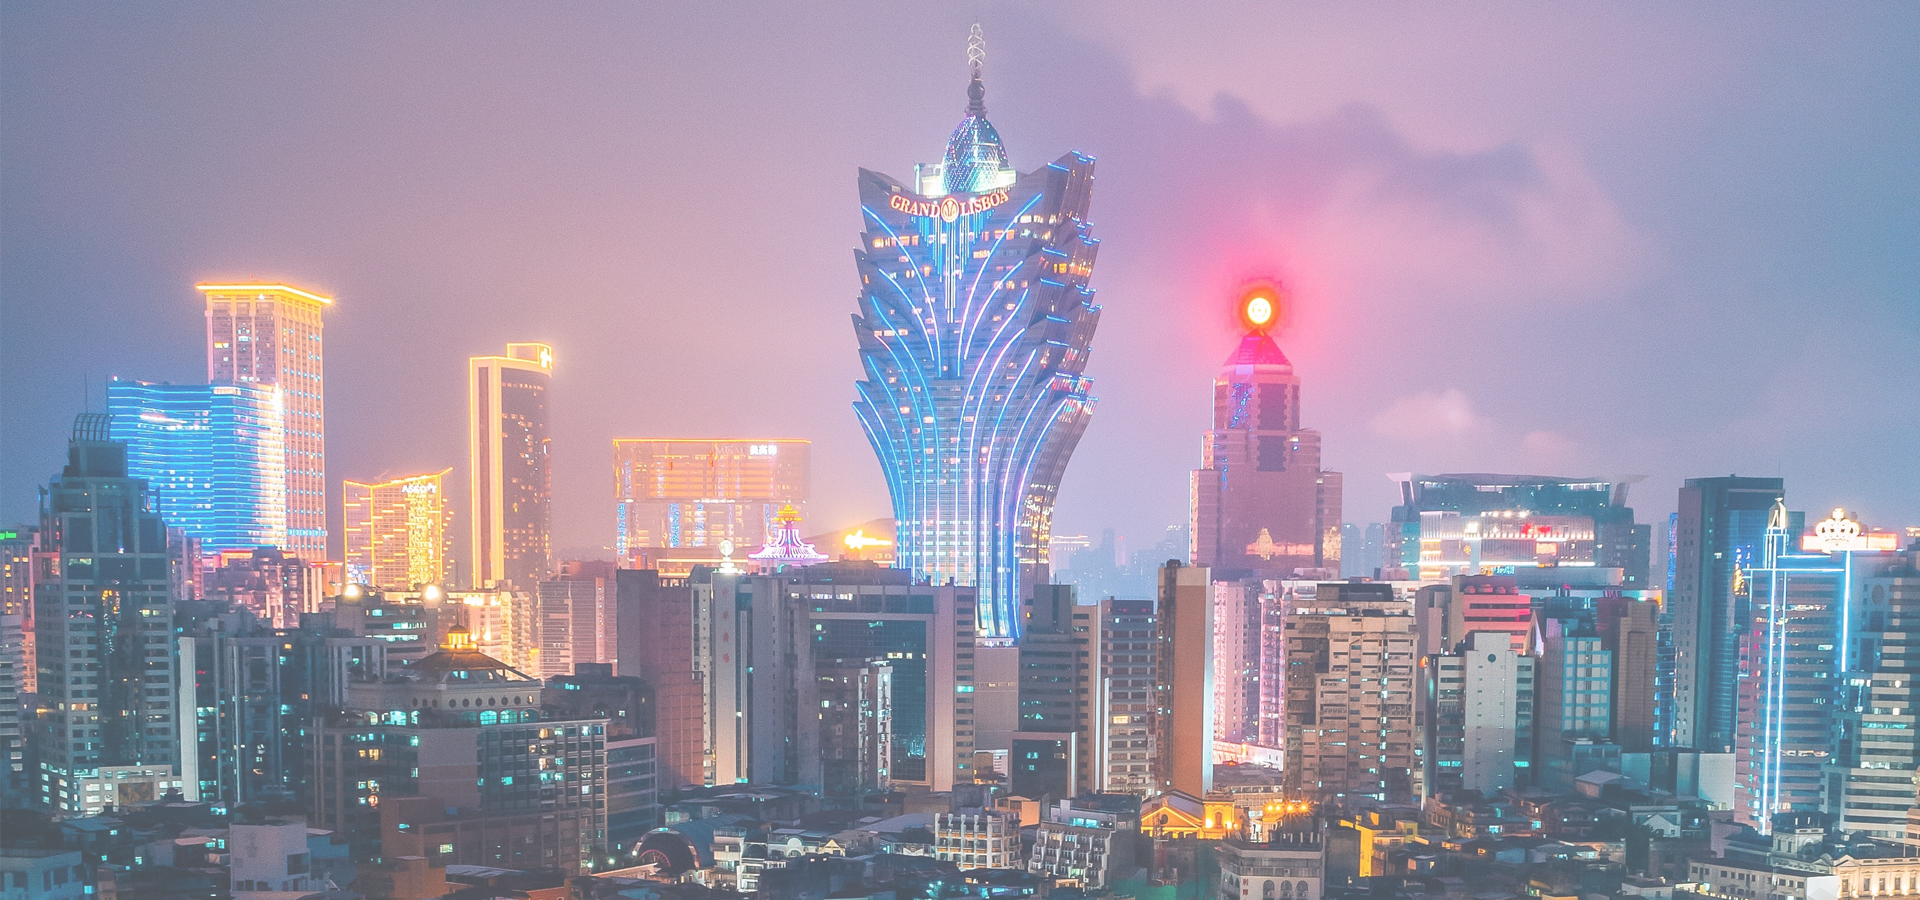 Peer-to-peer advisory in Macau, Macao